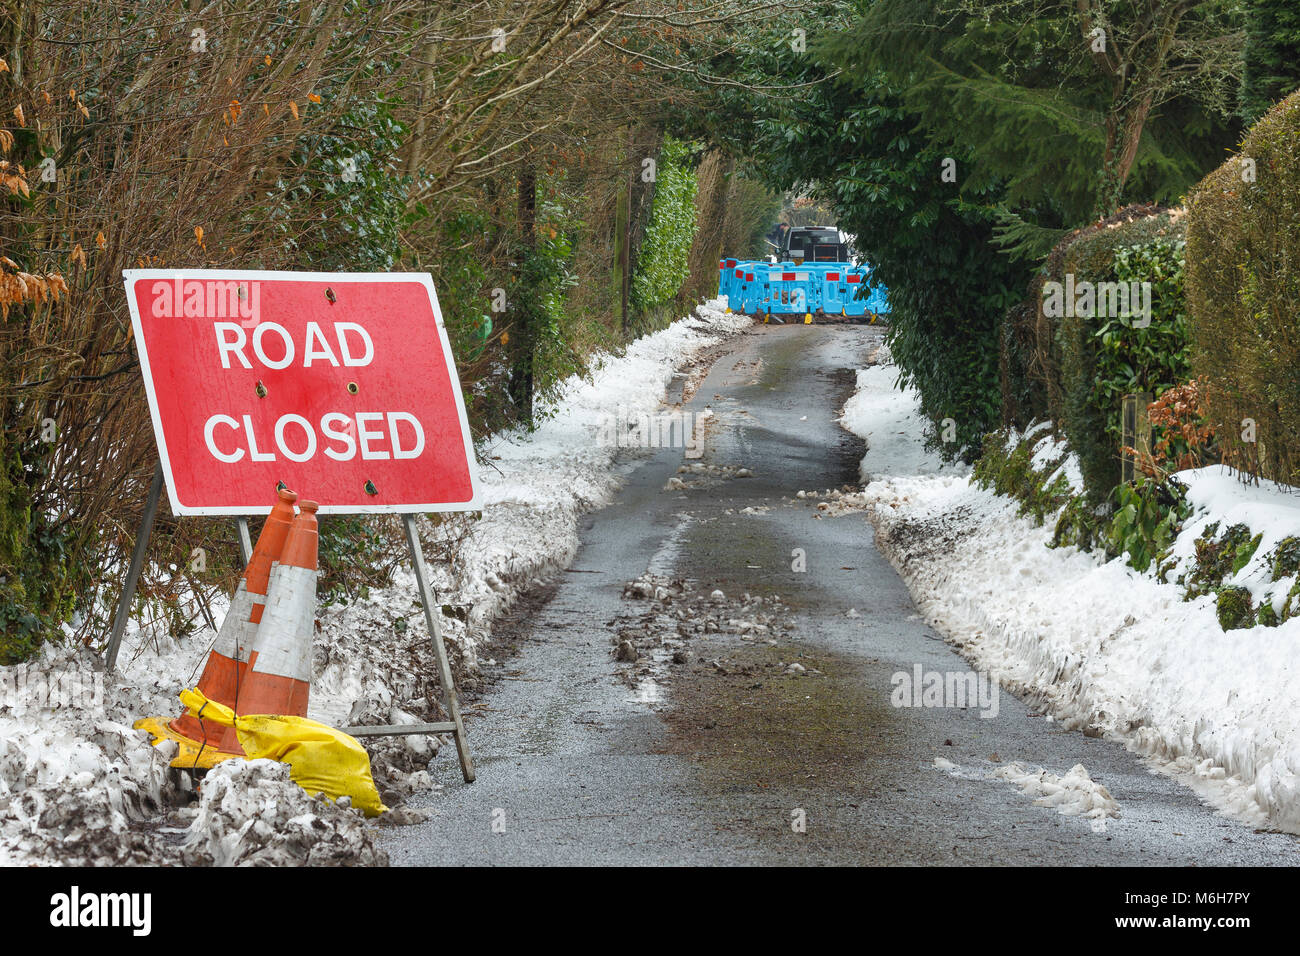 Road closure due to burst water main after heavy snowfall and freezing temperatures. Catbrook, Monmouthshire, Wales - Stock Image